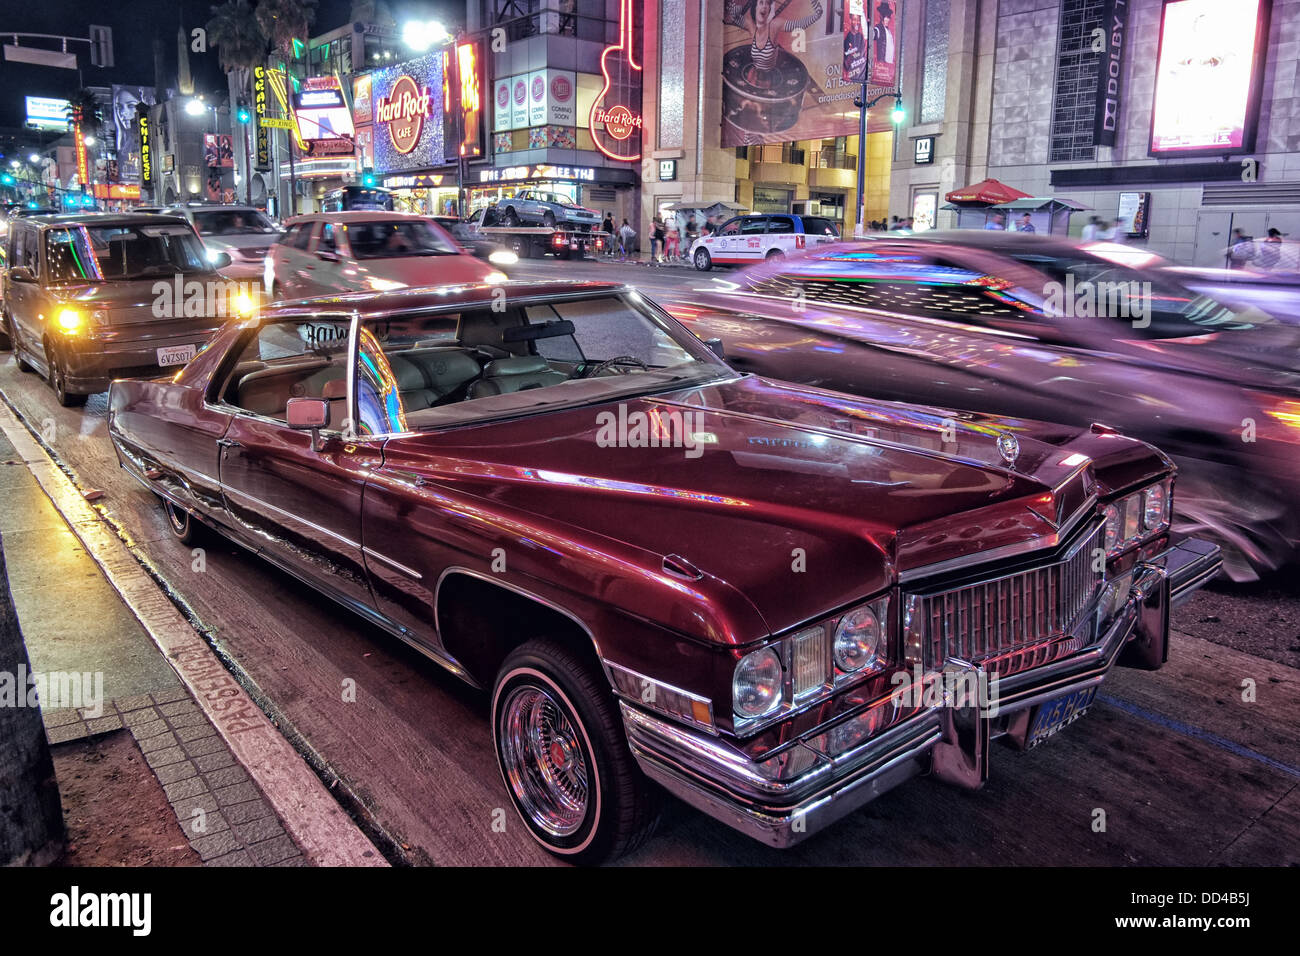 Hollywood Boulevard by night - Stock Image